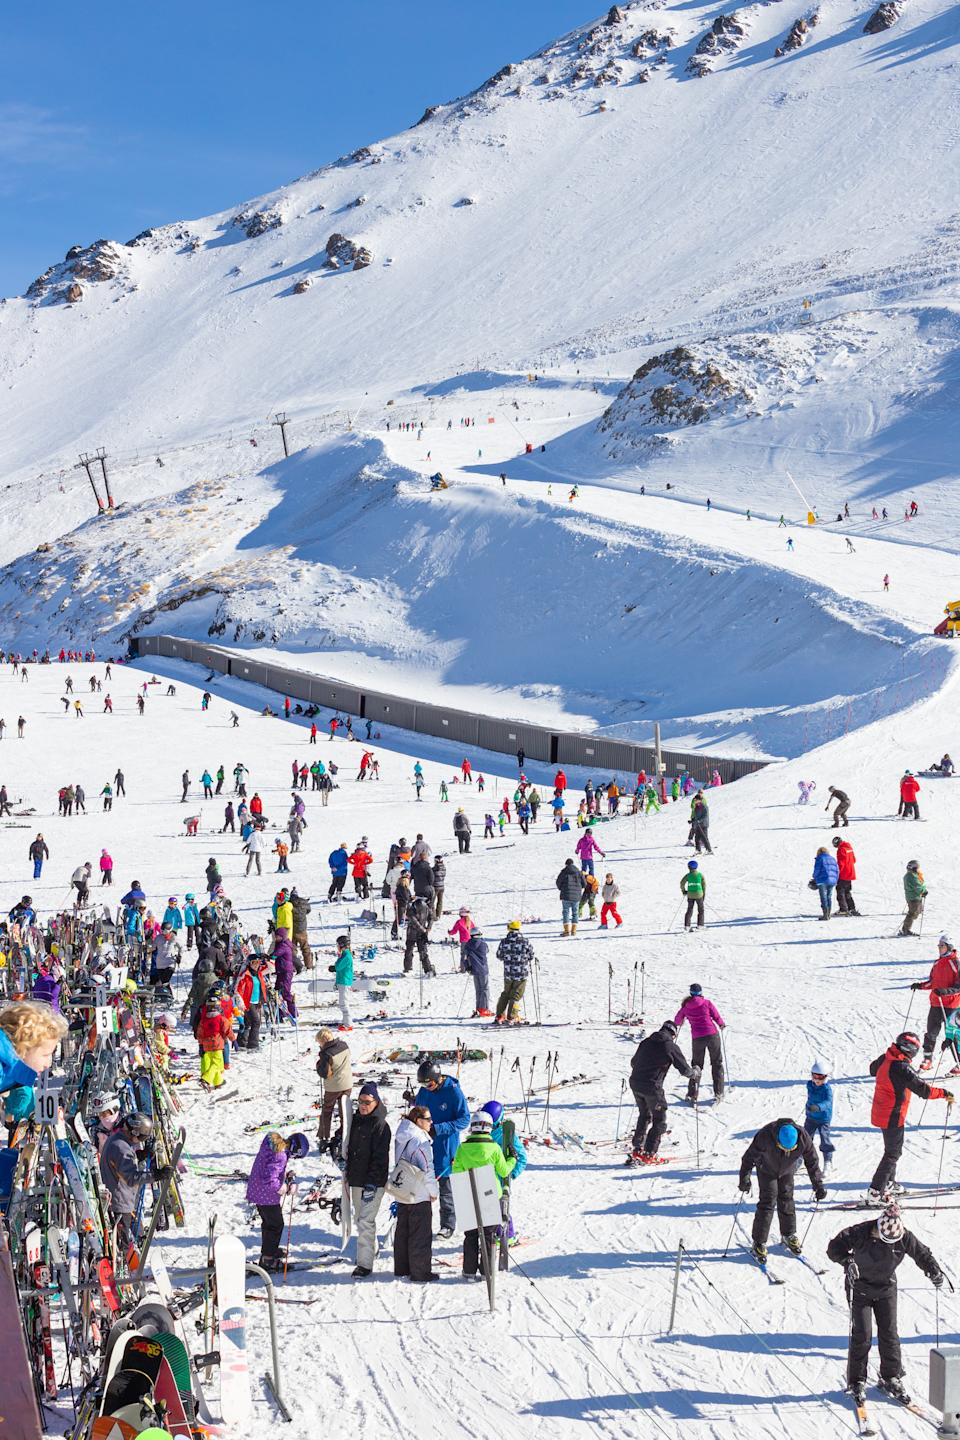 Mt Hutt, New Zealand August 10, 2014.  A very colorful crowd of skiers on a bright sunny winter's day on Mt Hutt in the South Island of New Zealand. Skiers are organizing themselves out on the ski slopes and getting ready to start skiing, with some skiers on the learners slope in the background.